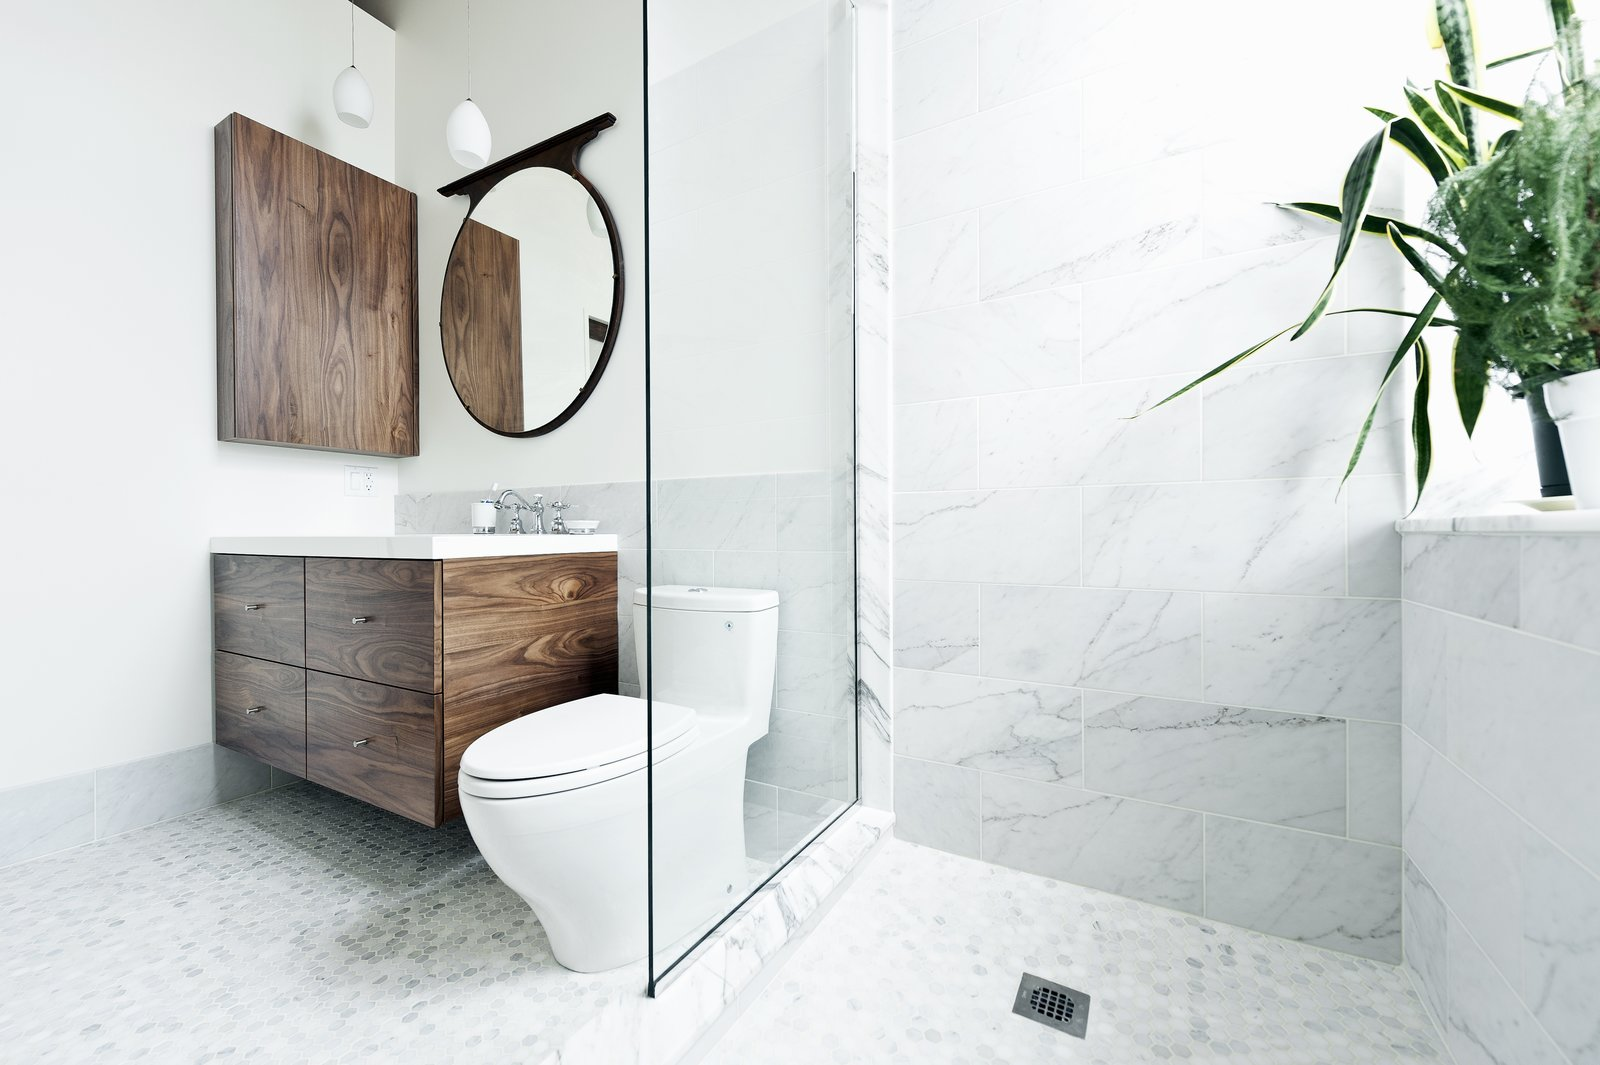 """What could I have that would feel luxurious, would make me feel really great?"" muses one of the homeowners. ""My husband and I travel a lot in Europe, and we always loved the marble showers. So we put a marble shower up against the window."" The sink and countertop are from Batimat, while the wall-hung vanity is another custom piece by Gepetto. Tagged: Bath Room, Porcelain Tile Floor, Pendant Lighting, Open Shower, Engineered Quartz Counter, Two Piece Toilet, and Marble Wall. Mad About Marble: 20 Kitchens and Bathrooms - Photo 21 of 21"